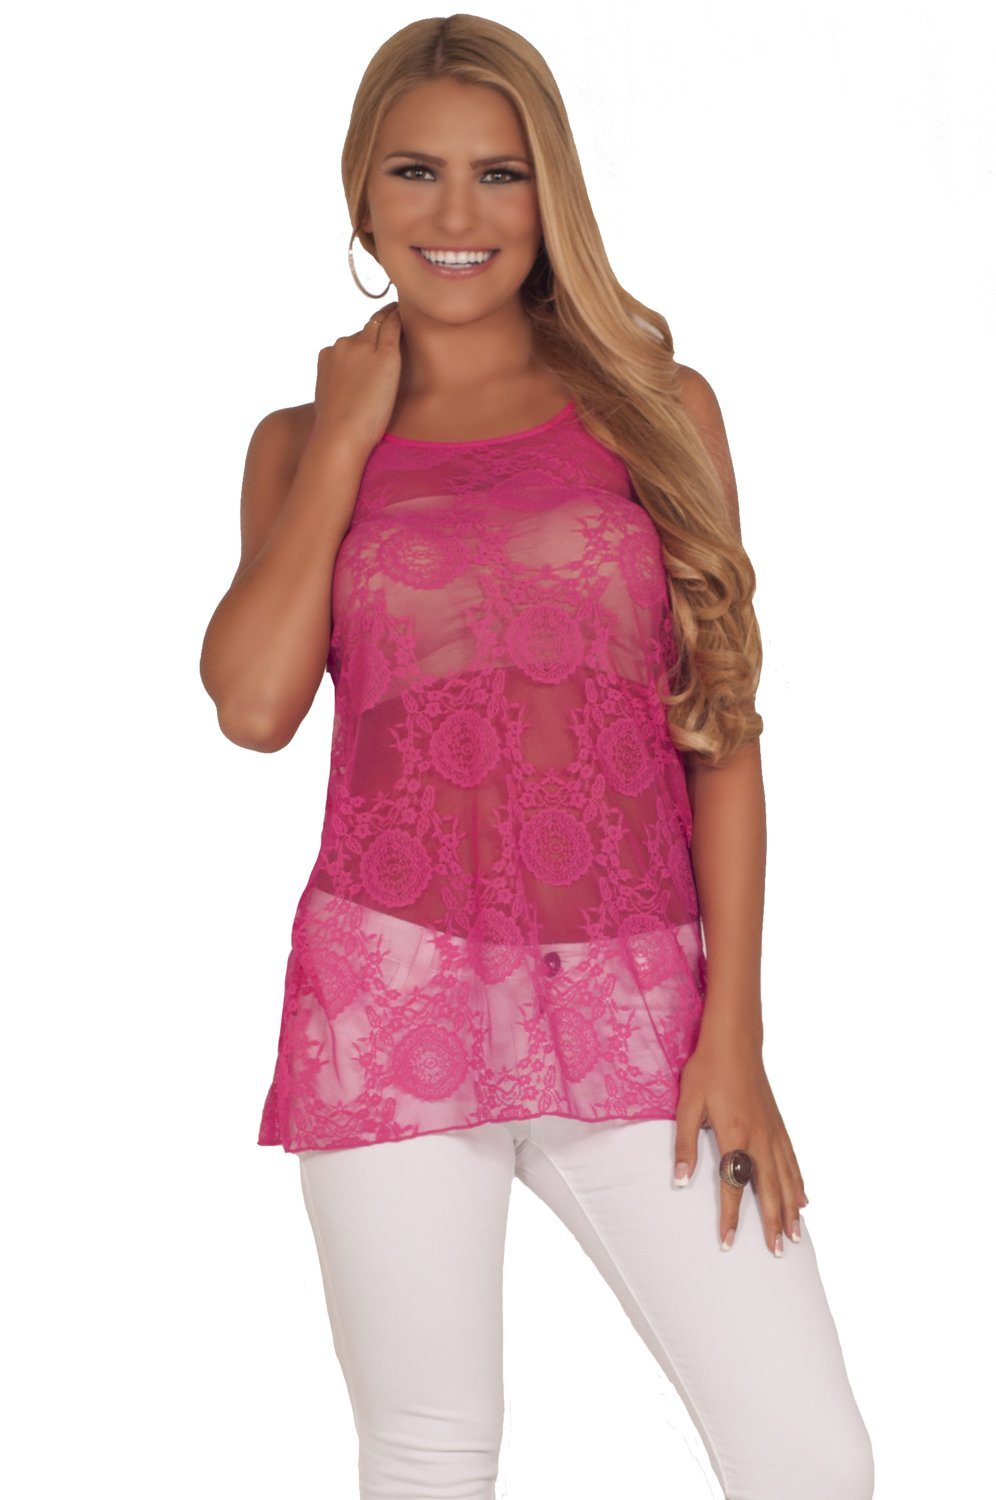 Amazon.com: Flirty Scoop Neck All-Around Floral Design Lace Long Tunic Racer Back Tank Top: Clothing